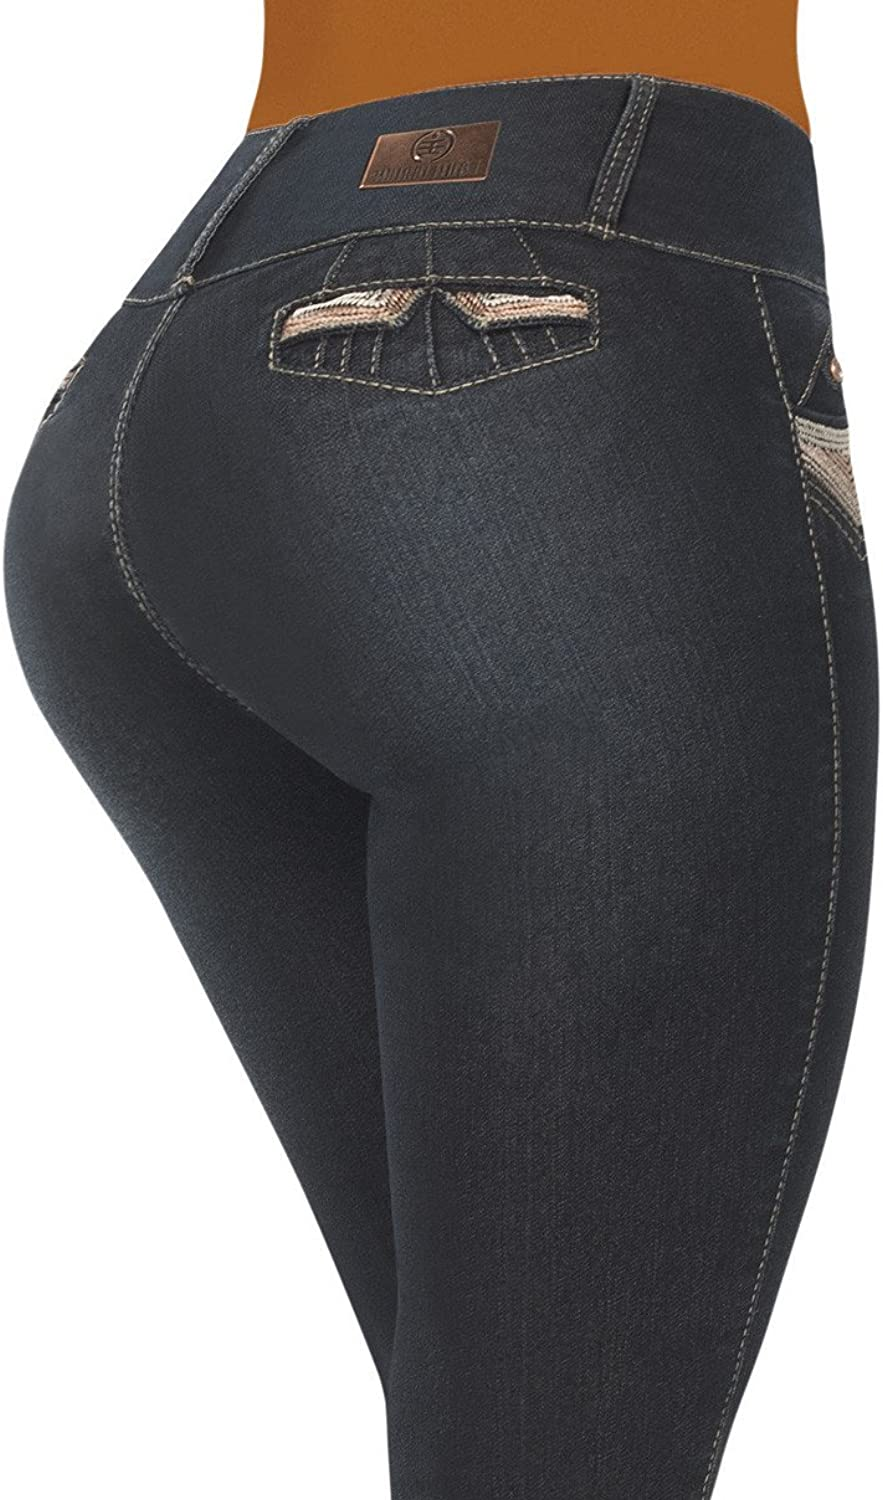 Equilibrium  Women's Ankle Length Jean  Skinny  Curvy Butt Lifter  Stretch Denim  Mid Rise  J8715